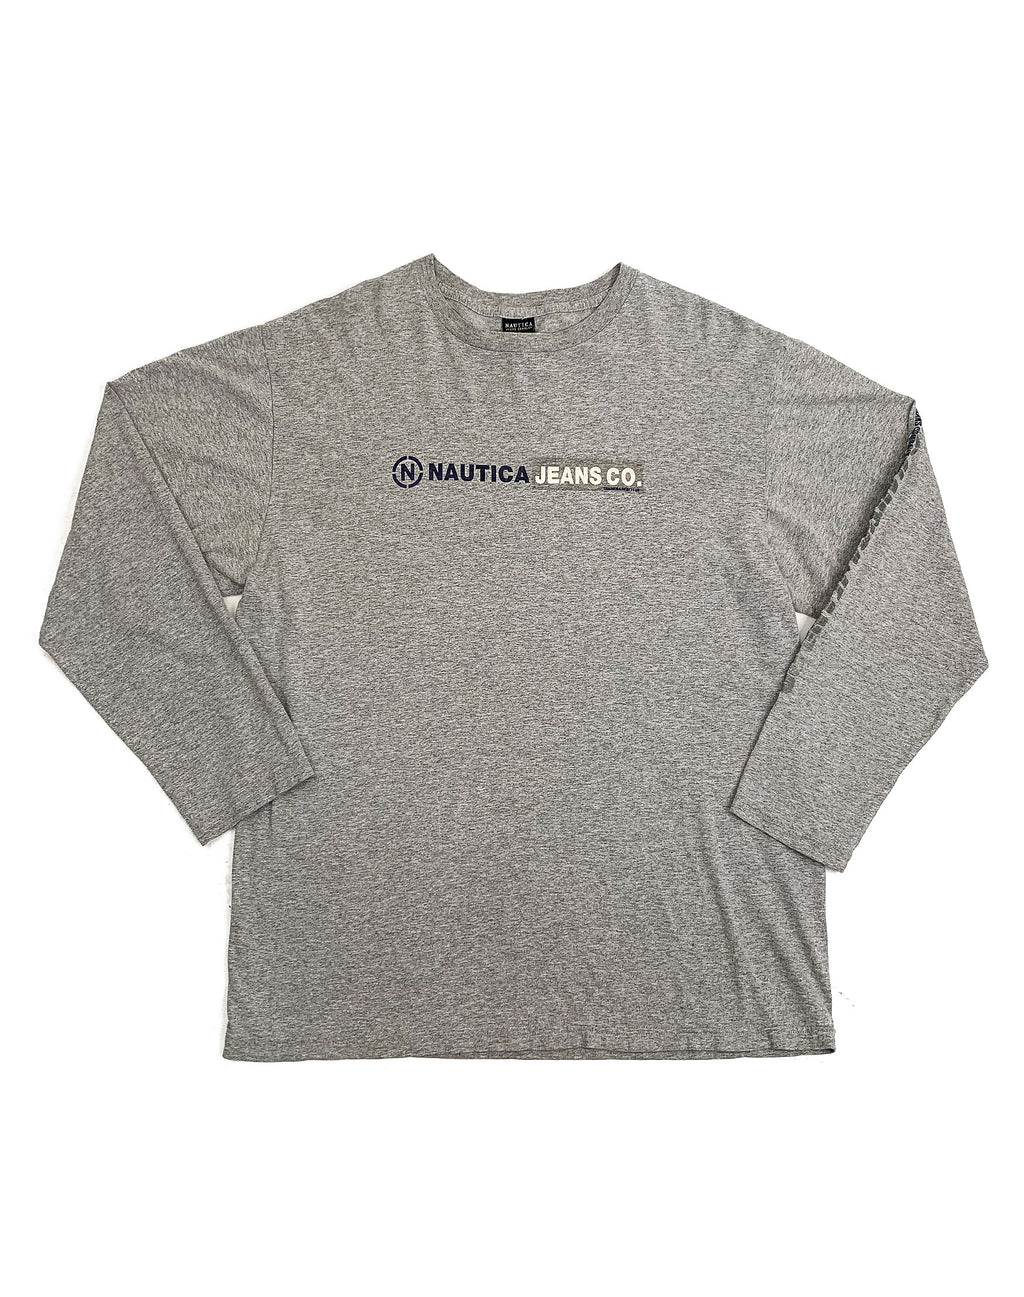 NAUTICA GREY LONG SLEEVE TEE